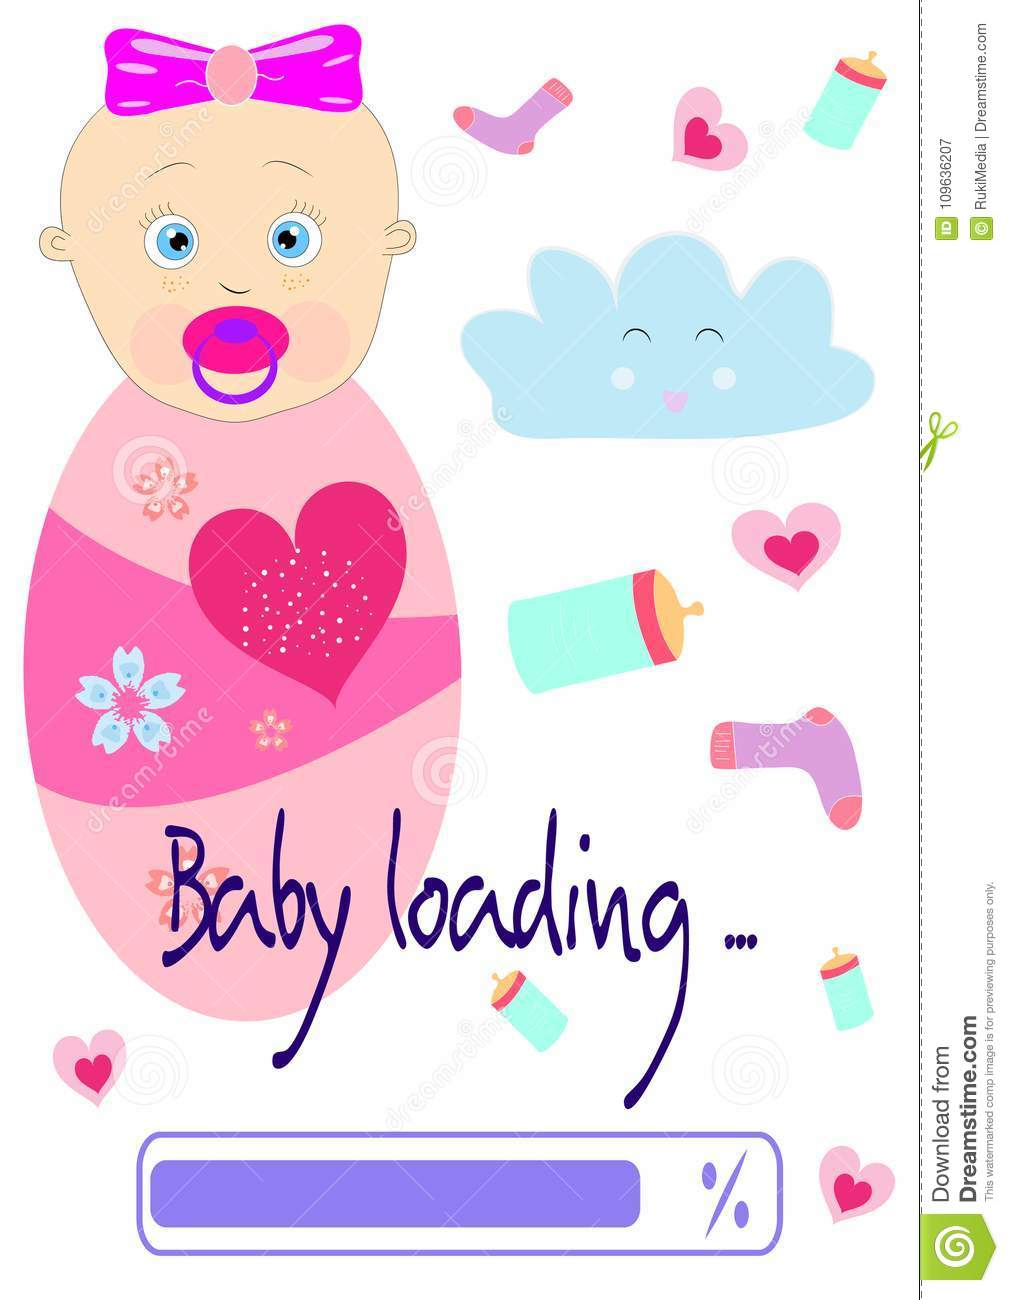 Colorful T Shirt Graphic Design With Baby Loading Text Stock